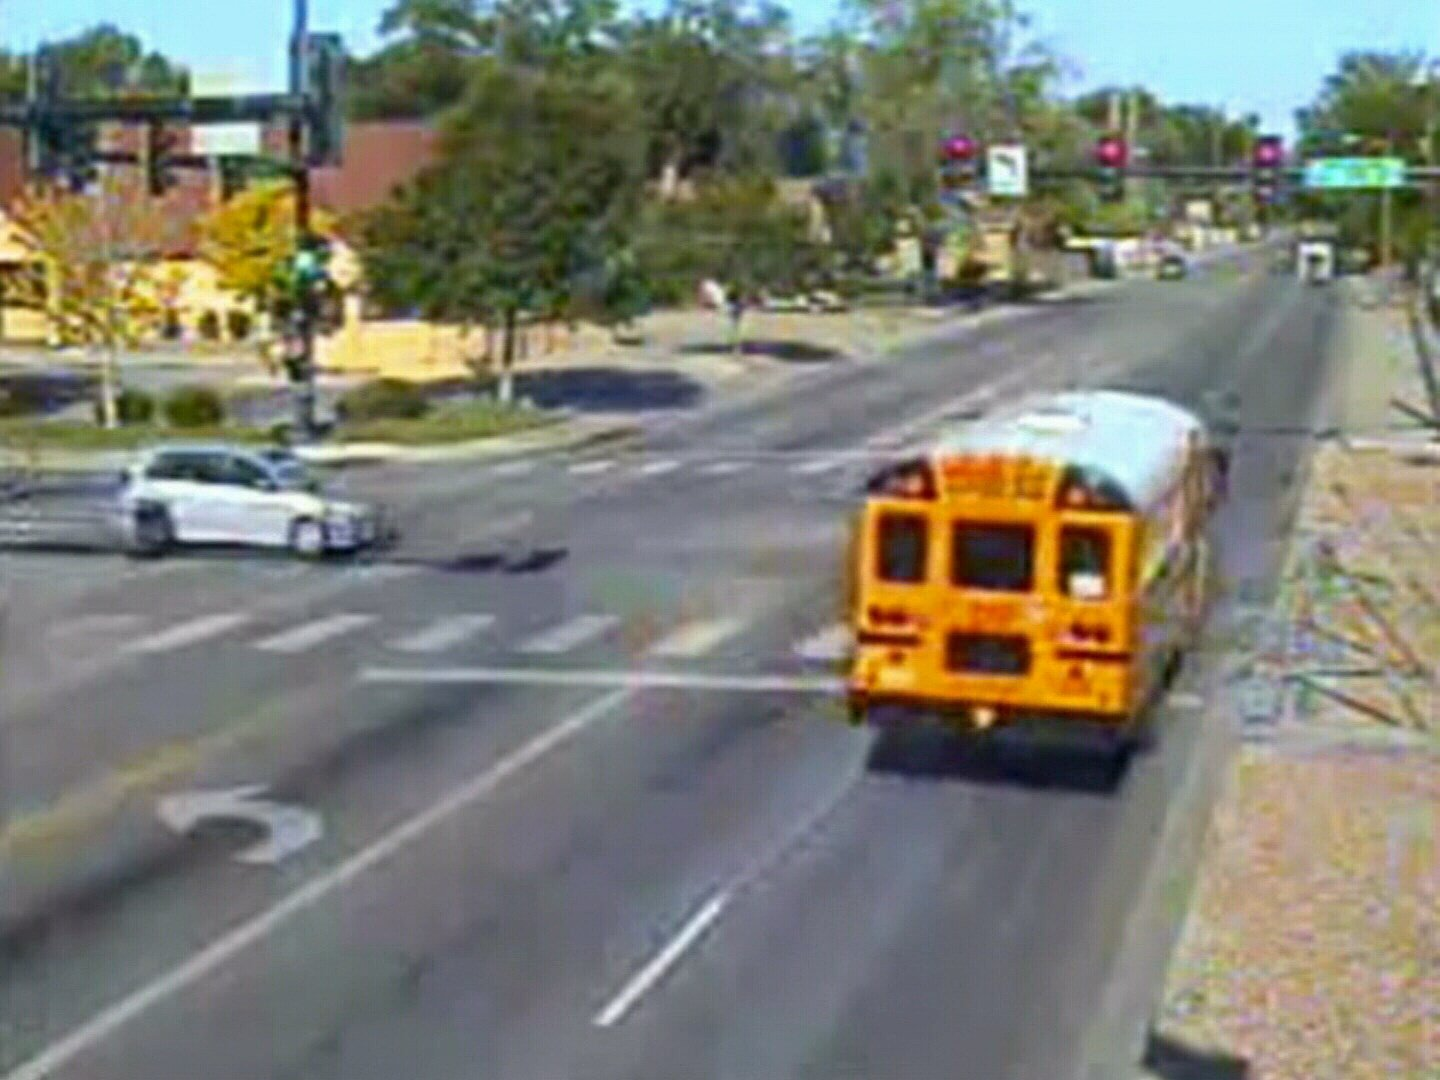 First Student Bus runs red light